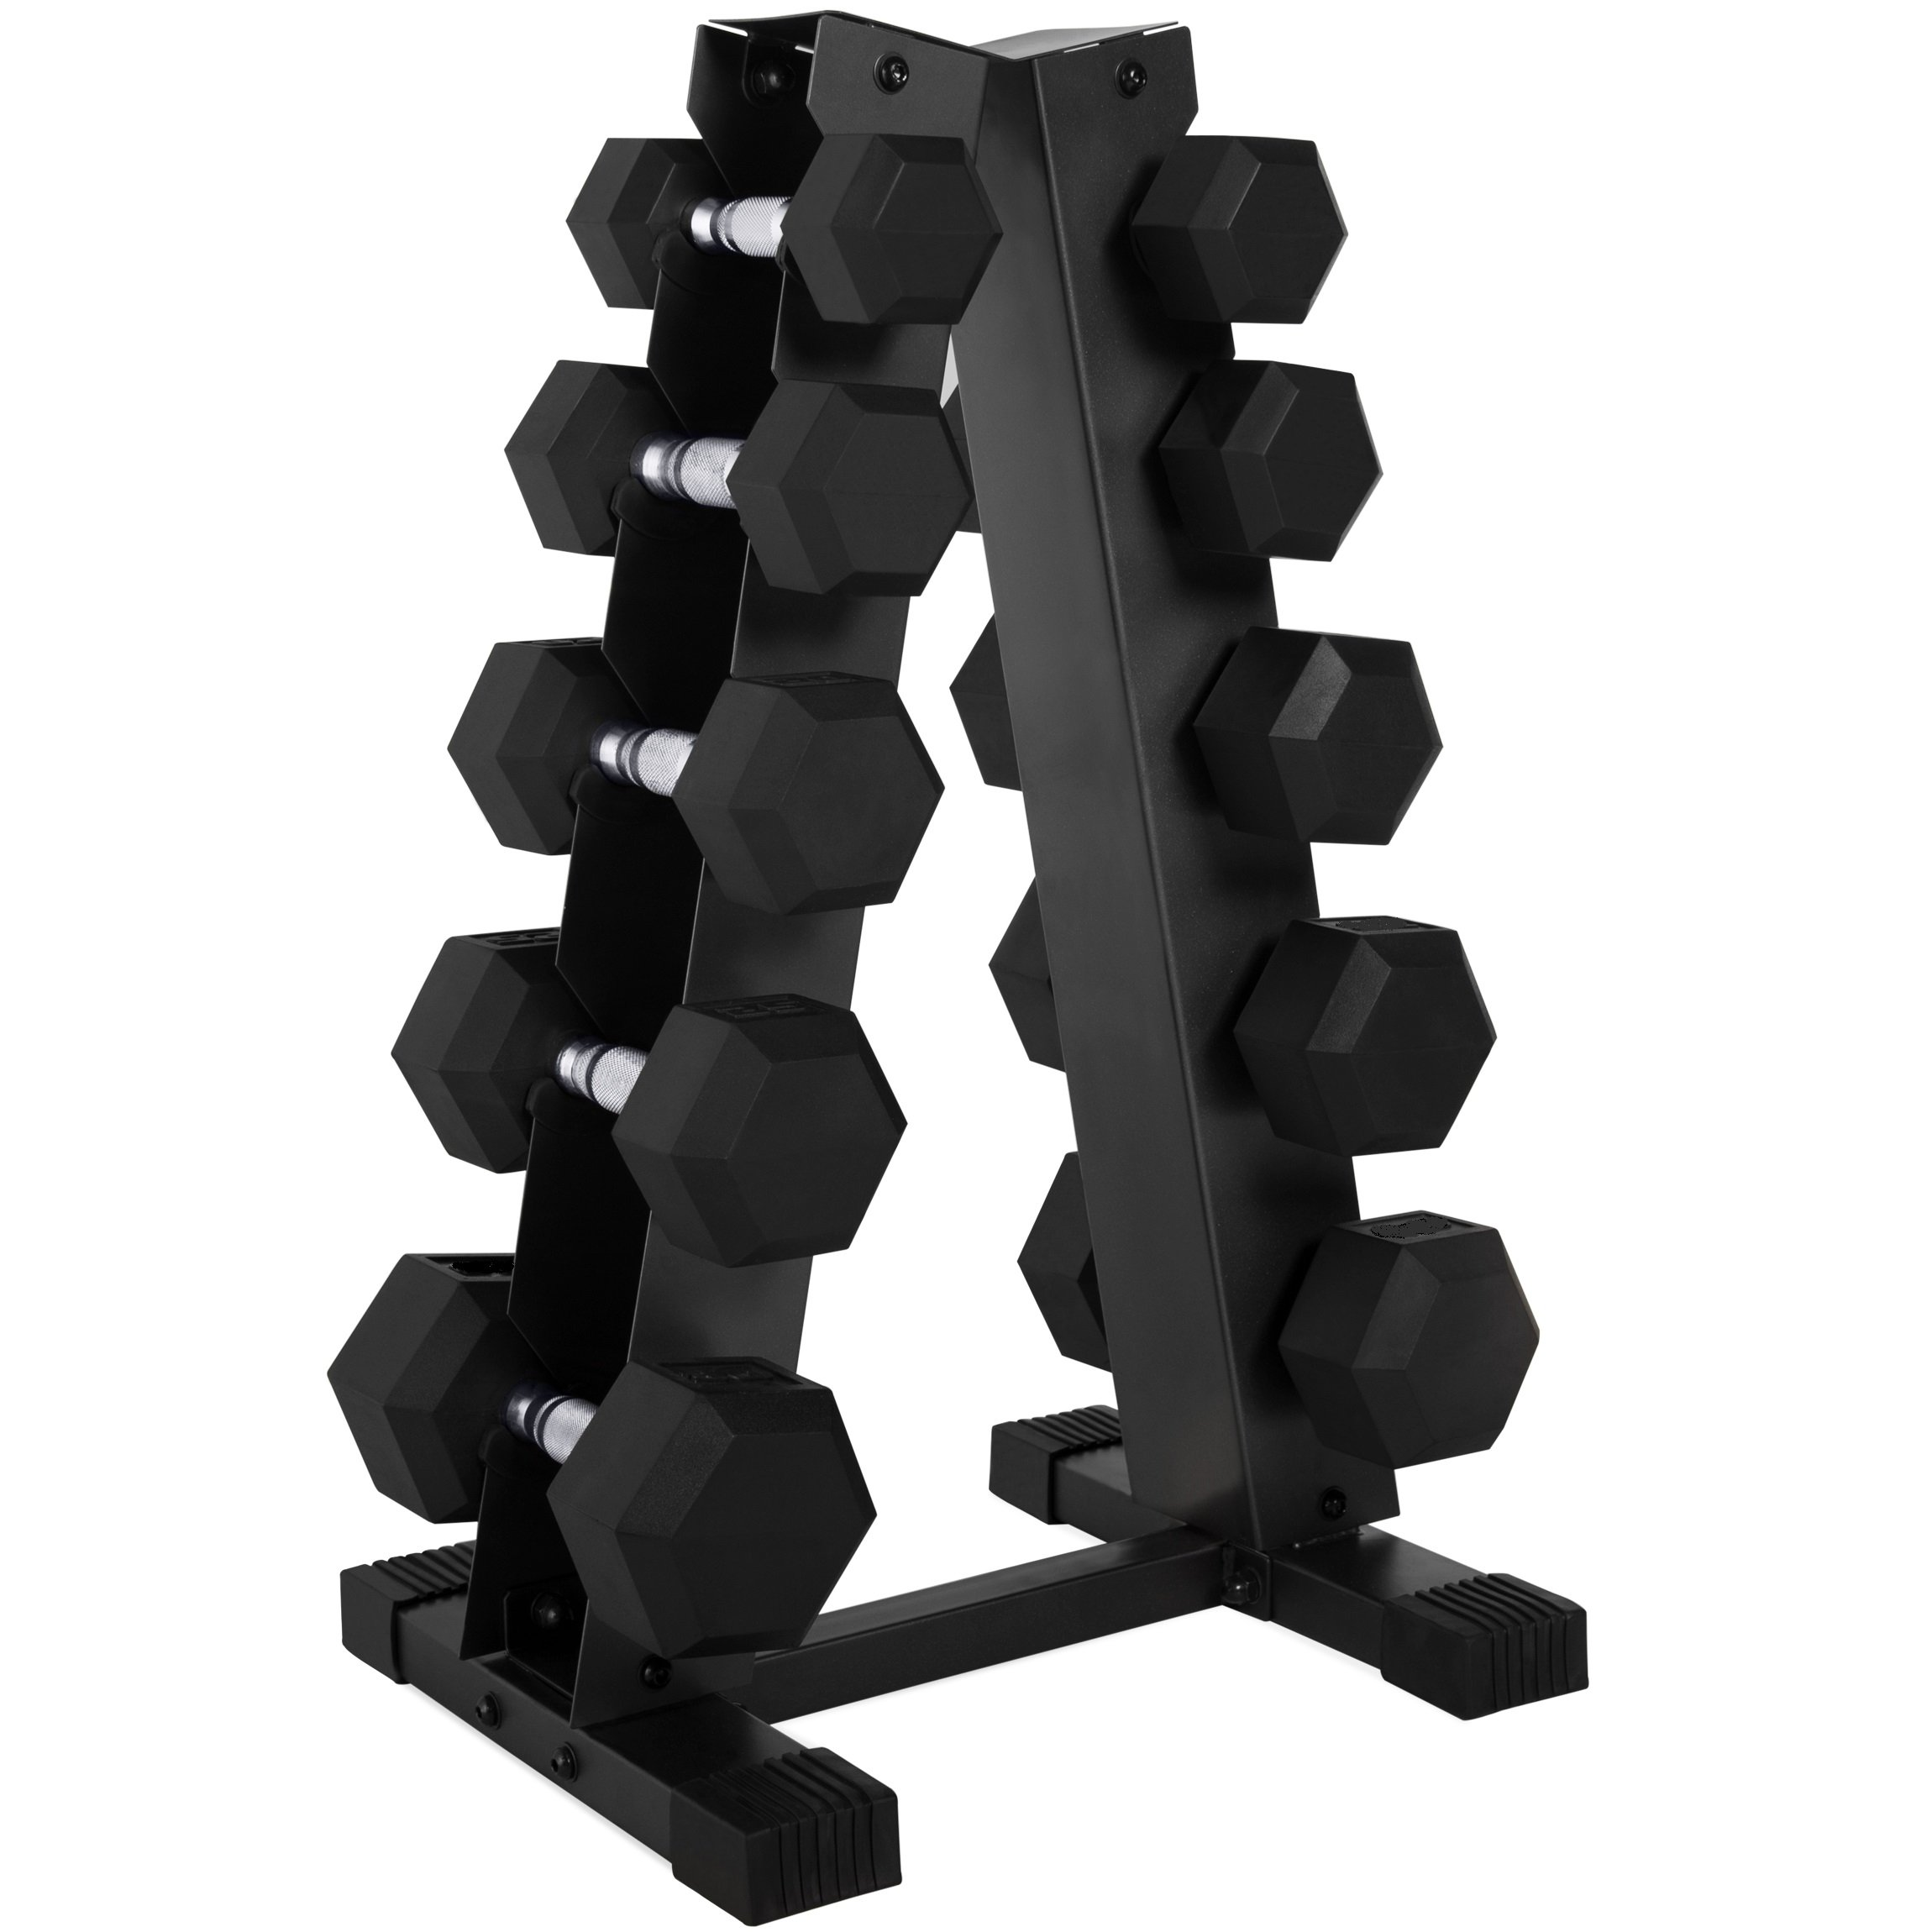 CAP 150-Pound Rubber Hex Dumbbell Weight Set, 5-25 Lbs with Rack by CAP Barbell